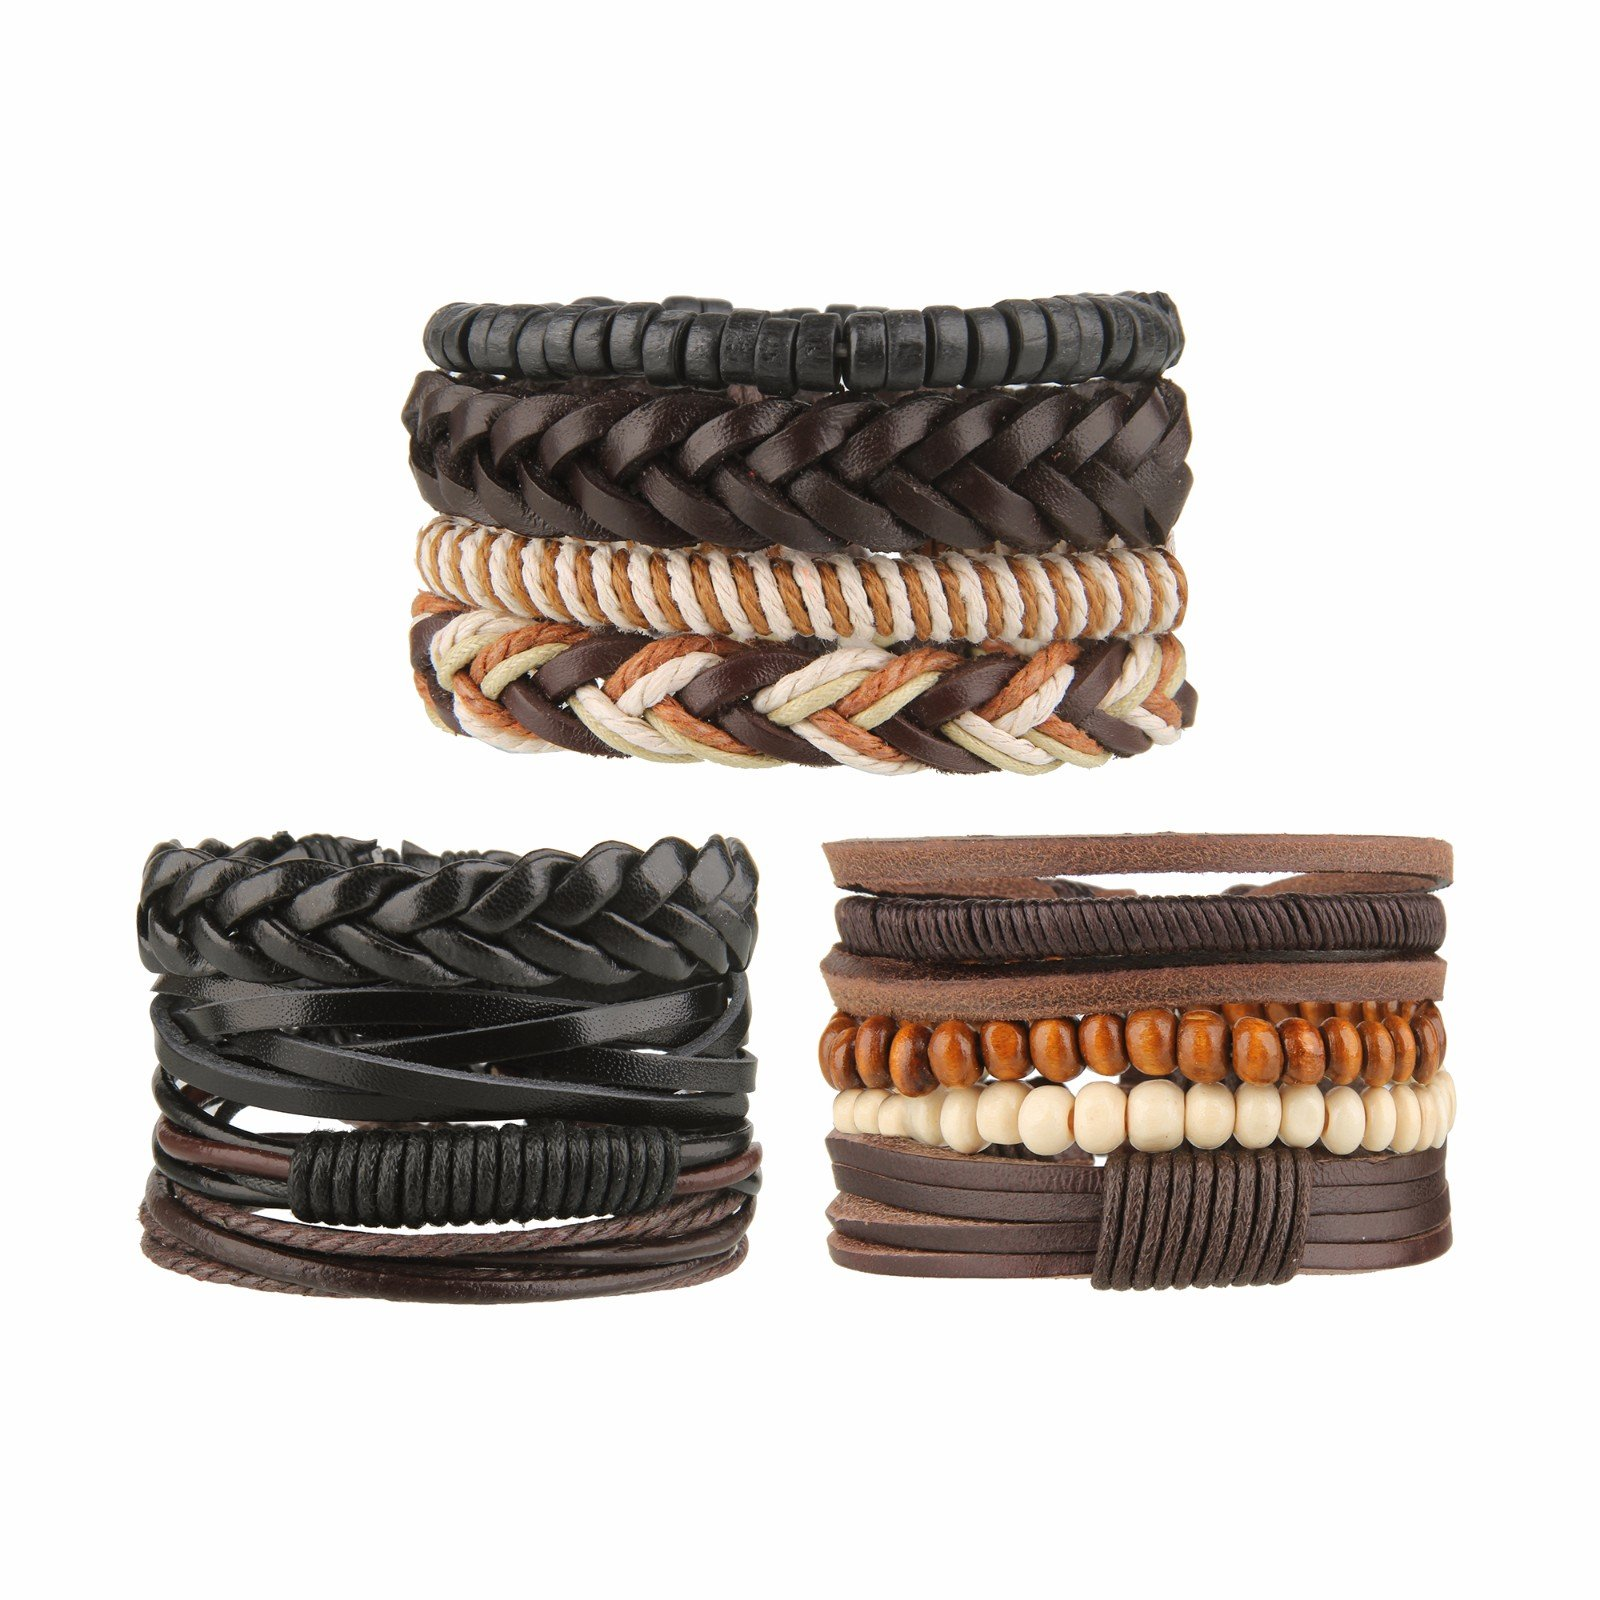 Beauty7 12PCS Mixed Genuine Cowhide Leather Bracelet Men Women Braided Adjustable Multi-layer Ethnic Tribal Wrap Bracelet Wood Bead Hemp Cord Cuff Wristband